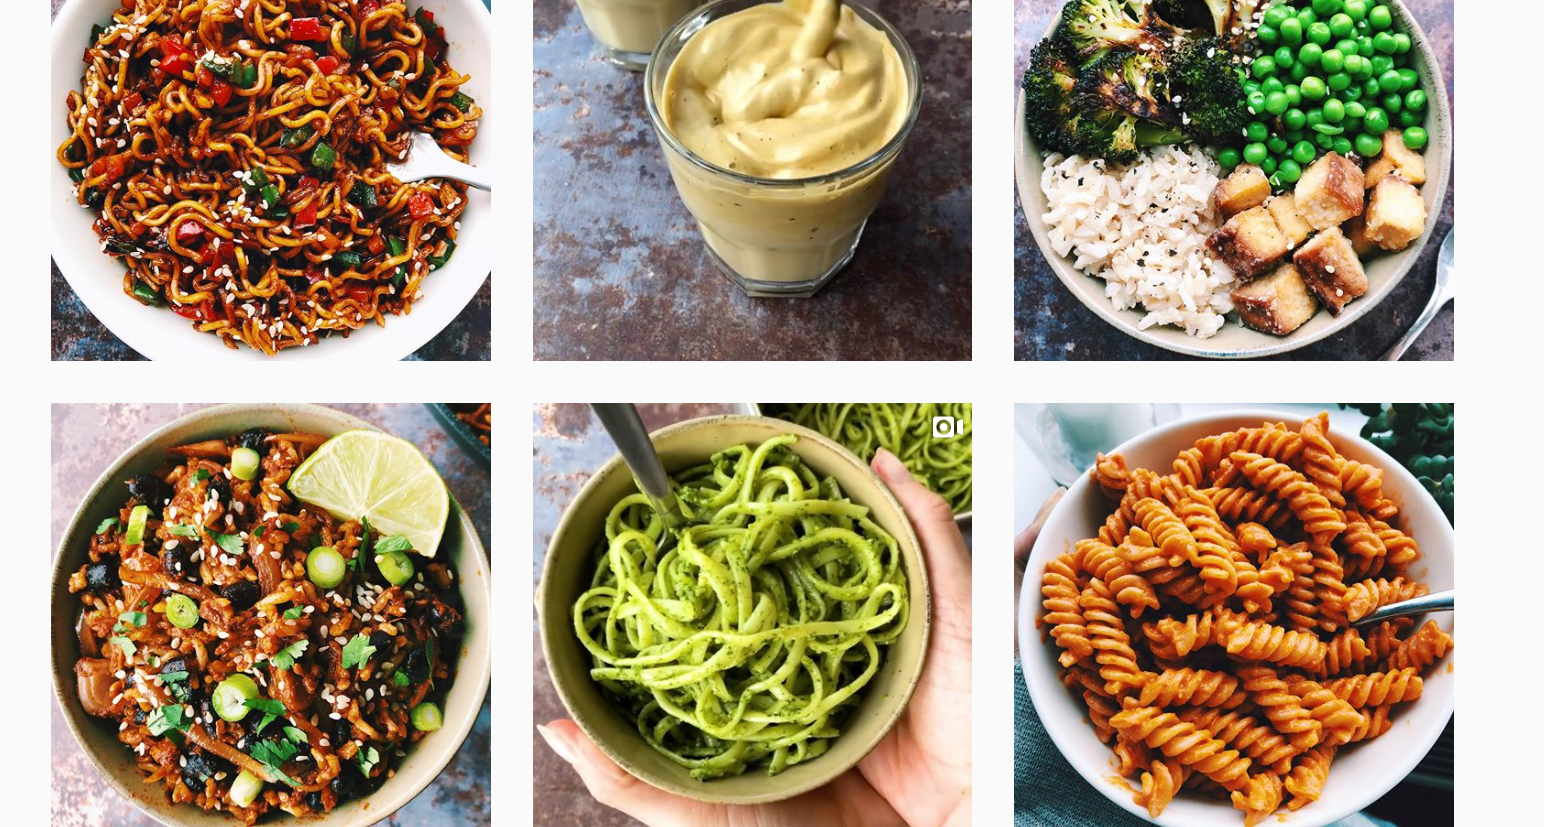 Why shouldn't you look for healthy plates on Instagram